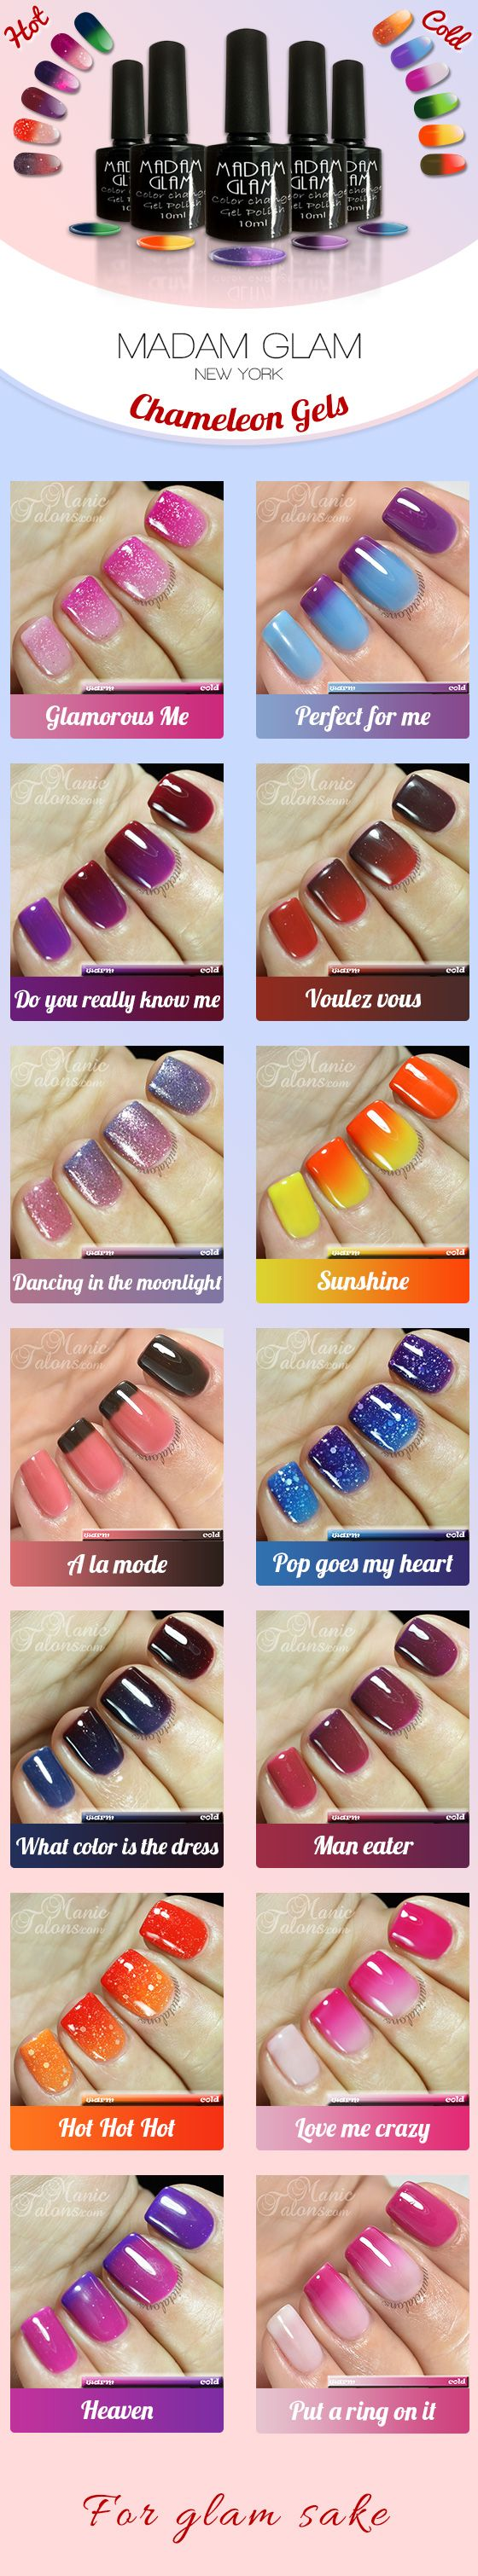 21 best Nails images on Pinterest | Cute nails, Hair dos and Make up ...